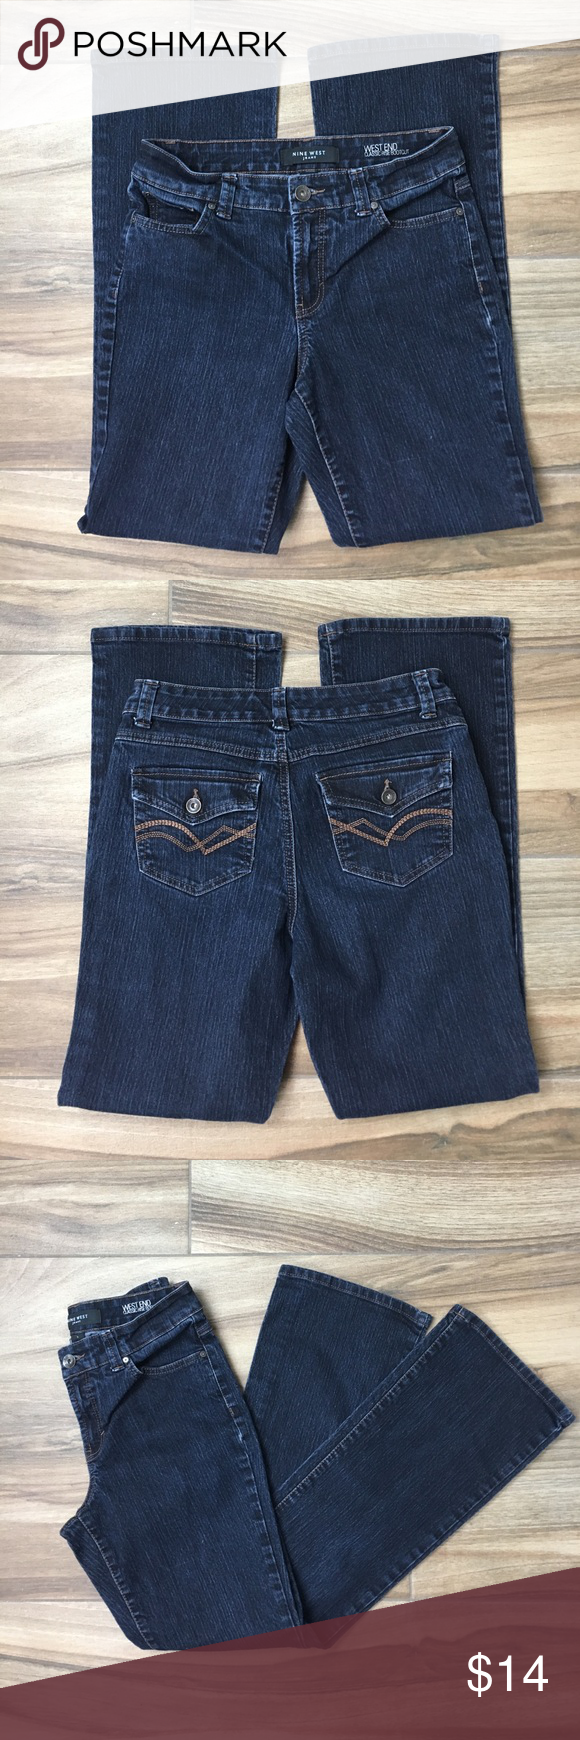 """Nine West Dark Wash Size 6 Bootcut Stretch Jeans Very Nice Pre-Loved Woman's Nine West Westend Classic Rise Bootcut. Size 6, Stretch, Dark Wash. All measurements are done by hand while laid flat. Waist 14.5"""" (29"""") Rise 9.25"""", Outseam 39.25"""", Inseam 30"""". Please ask any questions and THANK YOU for shopping! 👖 Nine West Jeans Boot Cut"""